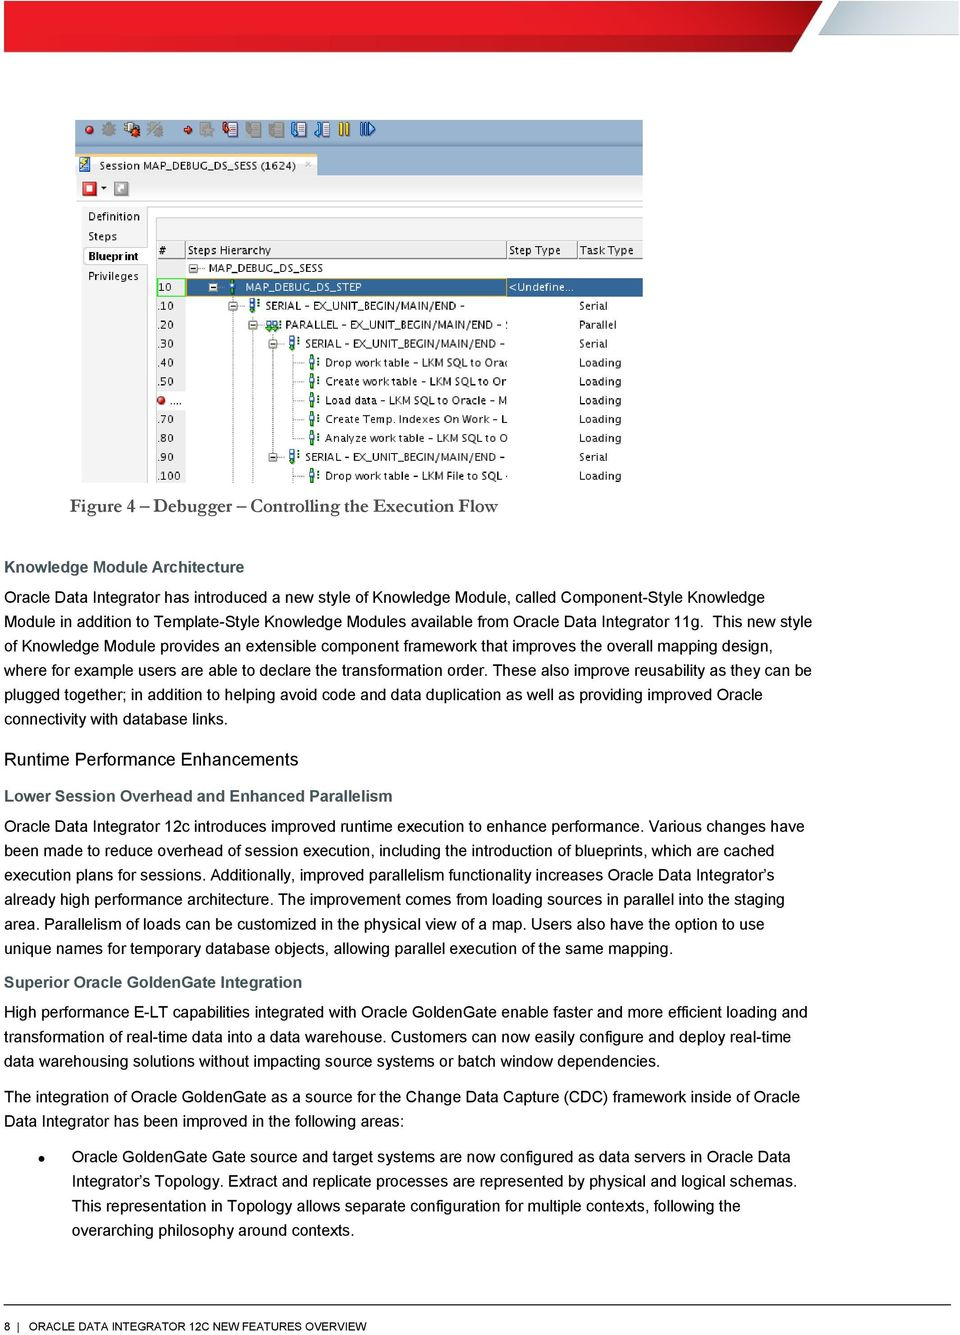 Oracle data integrator 12c new features overview advancing big data this new style of knowledge module provides an extensible component framework that improves the overall mapping malvernweather